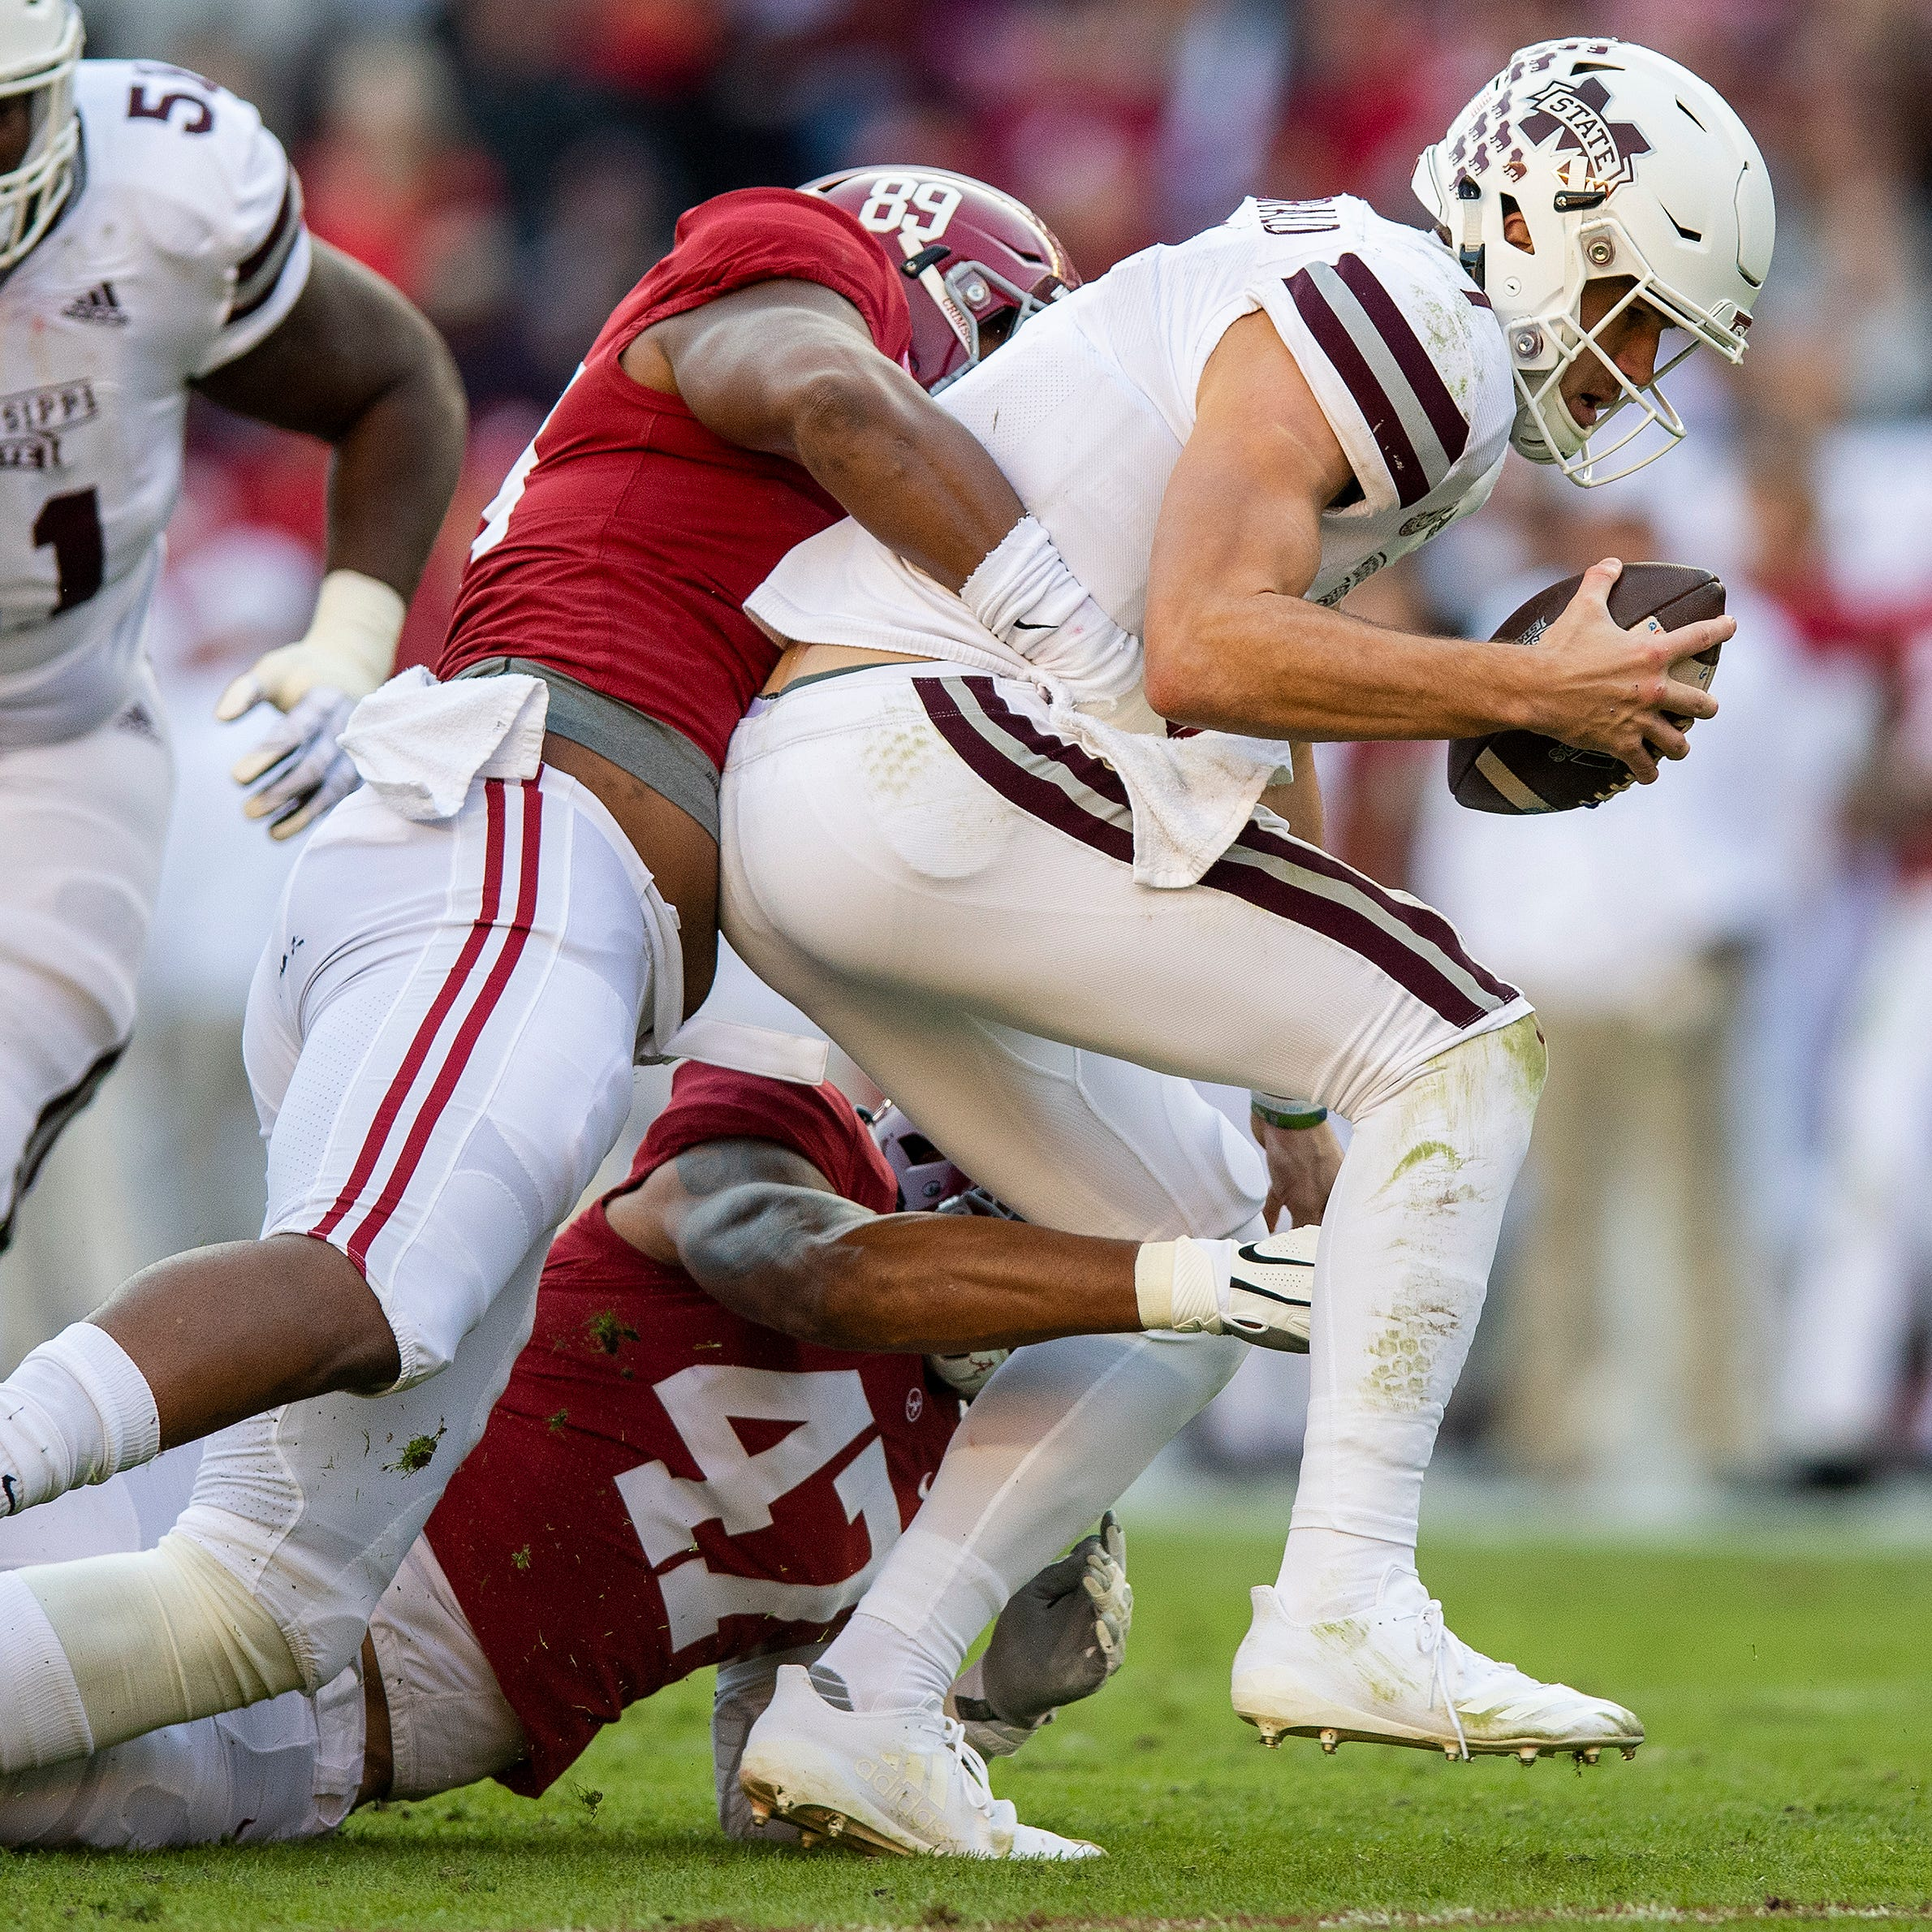 SEC conspiracy favors Tide? Questionable calls make you to wonder